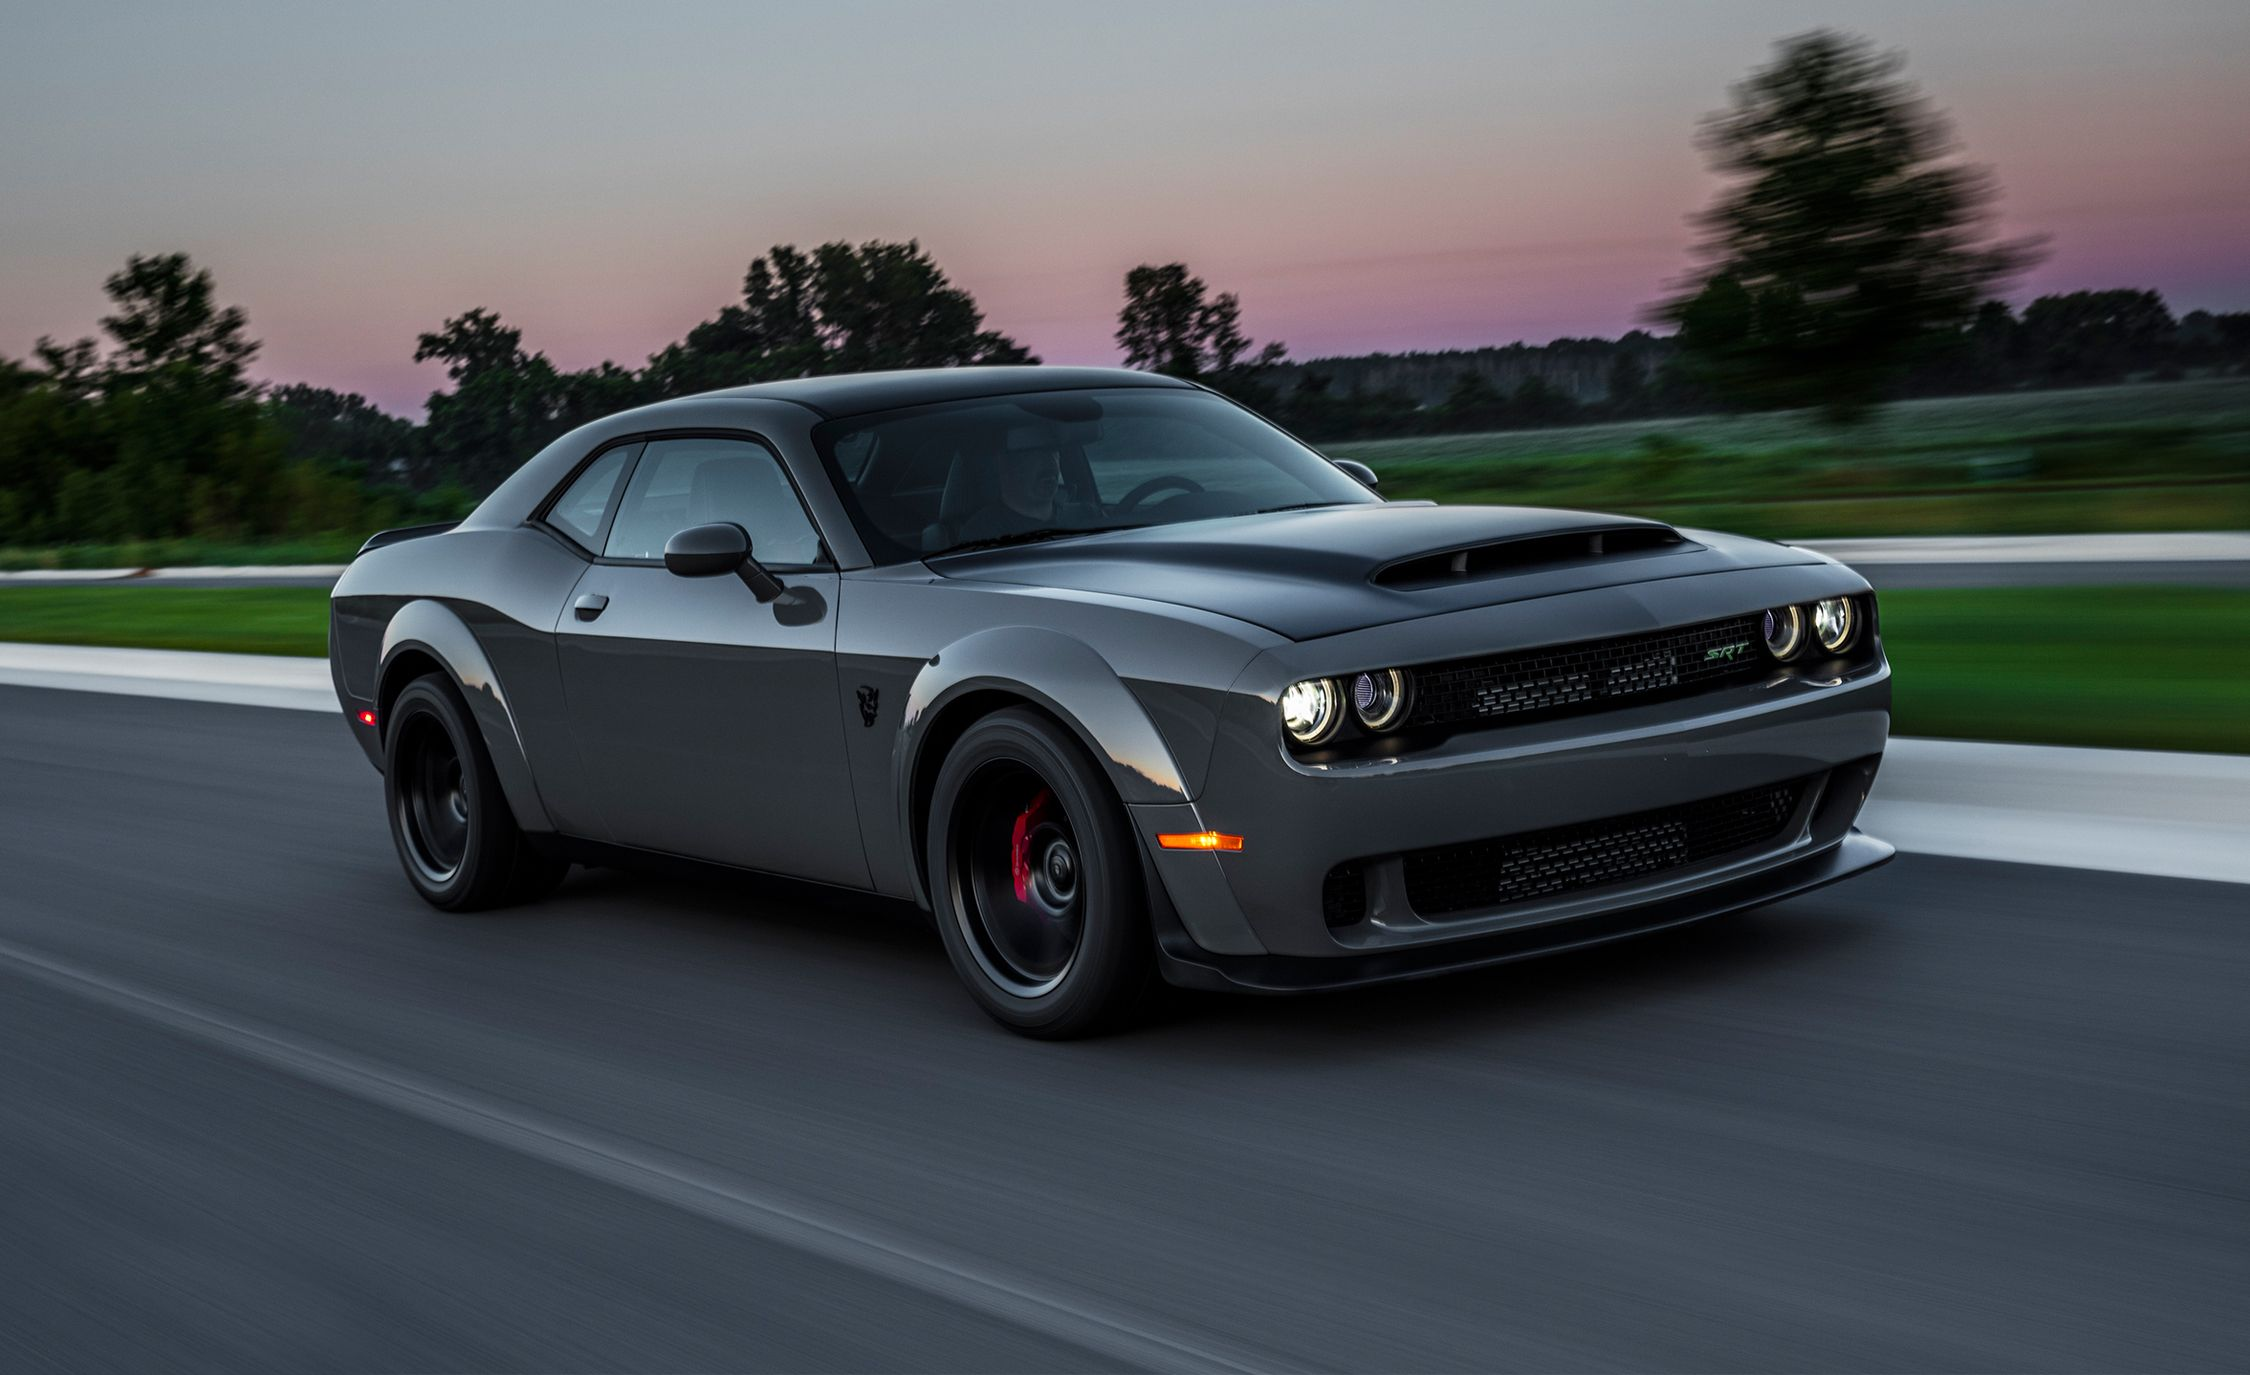 2018 dodge challenger srt demon reviews dodge challenger srt demon price photos and specs. Black Bedroom Furniture Sets. Home Design Ideas